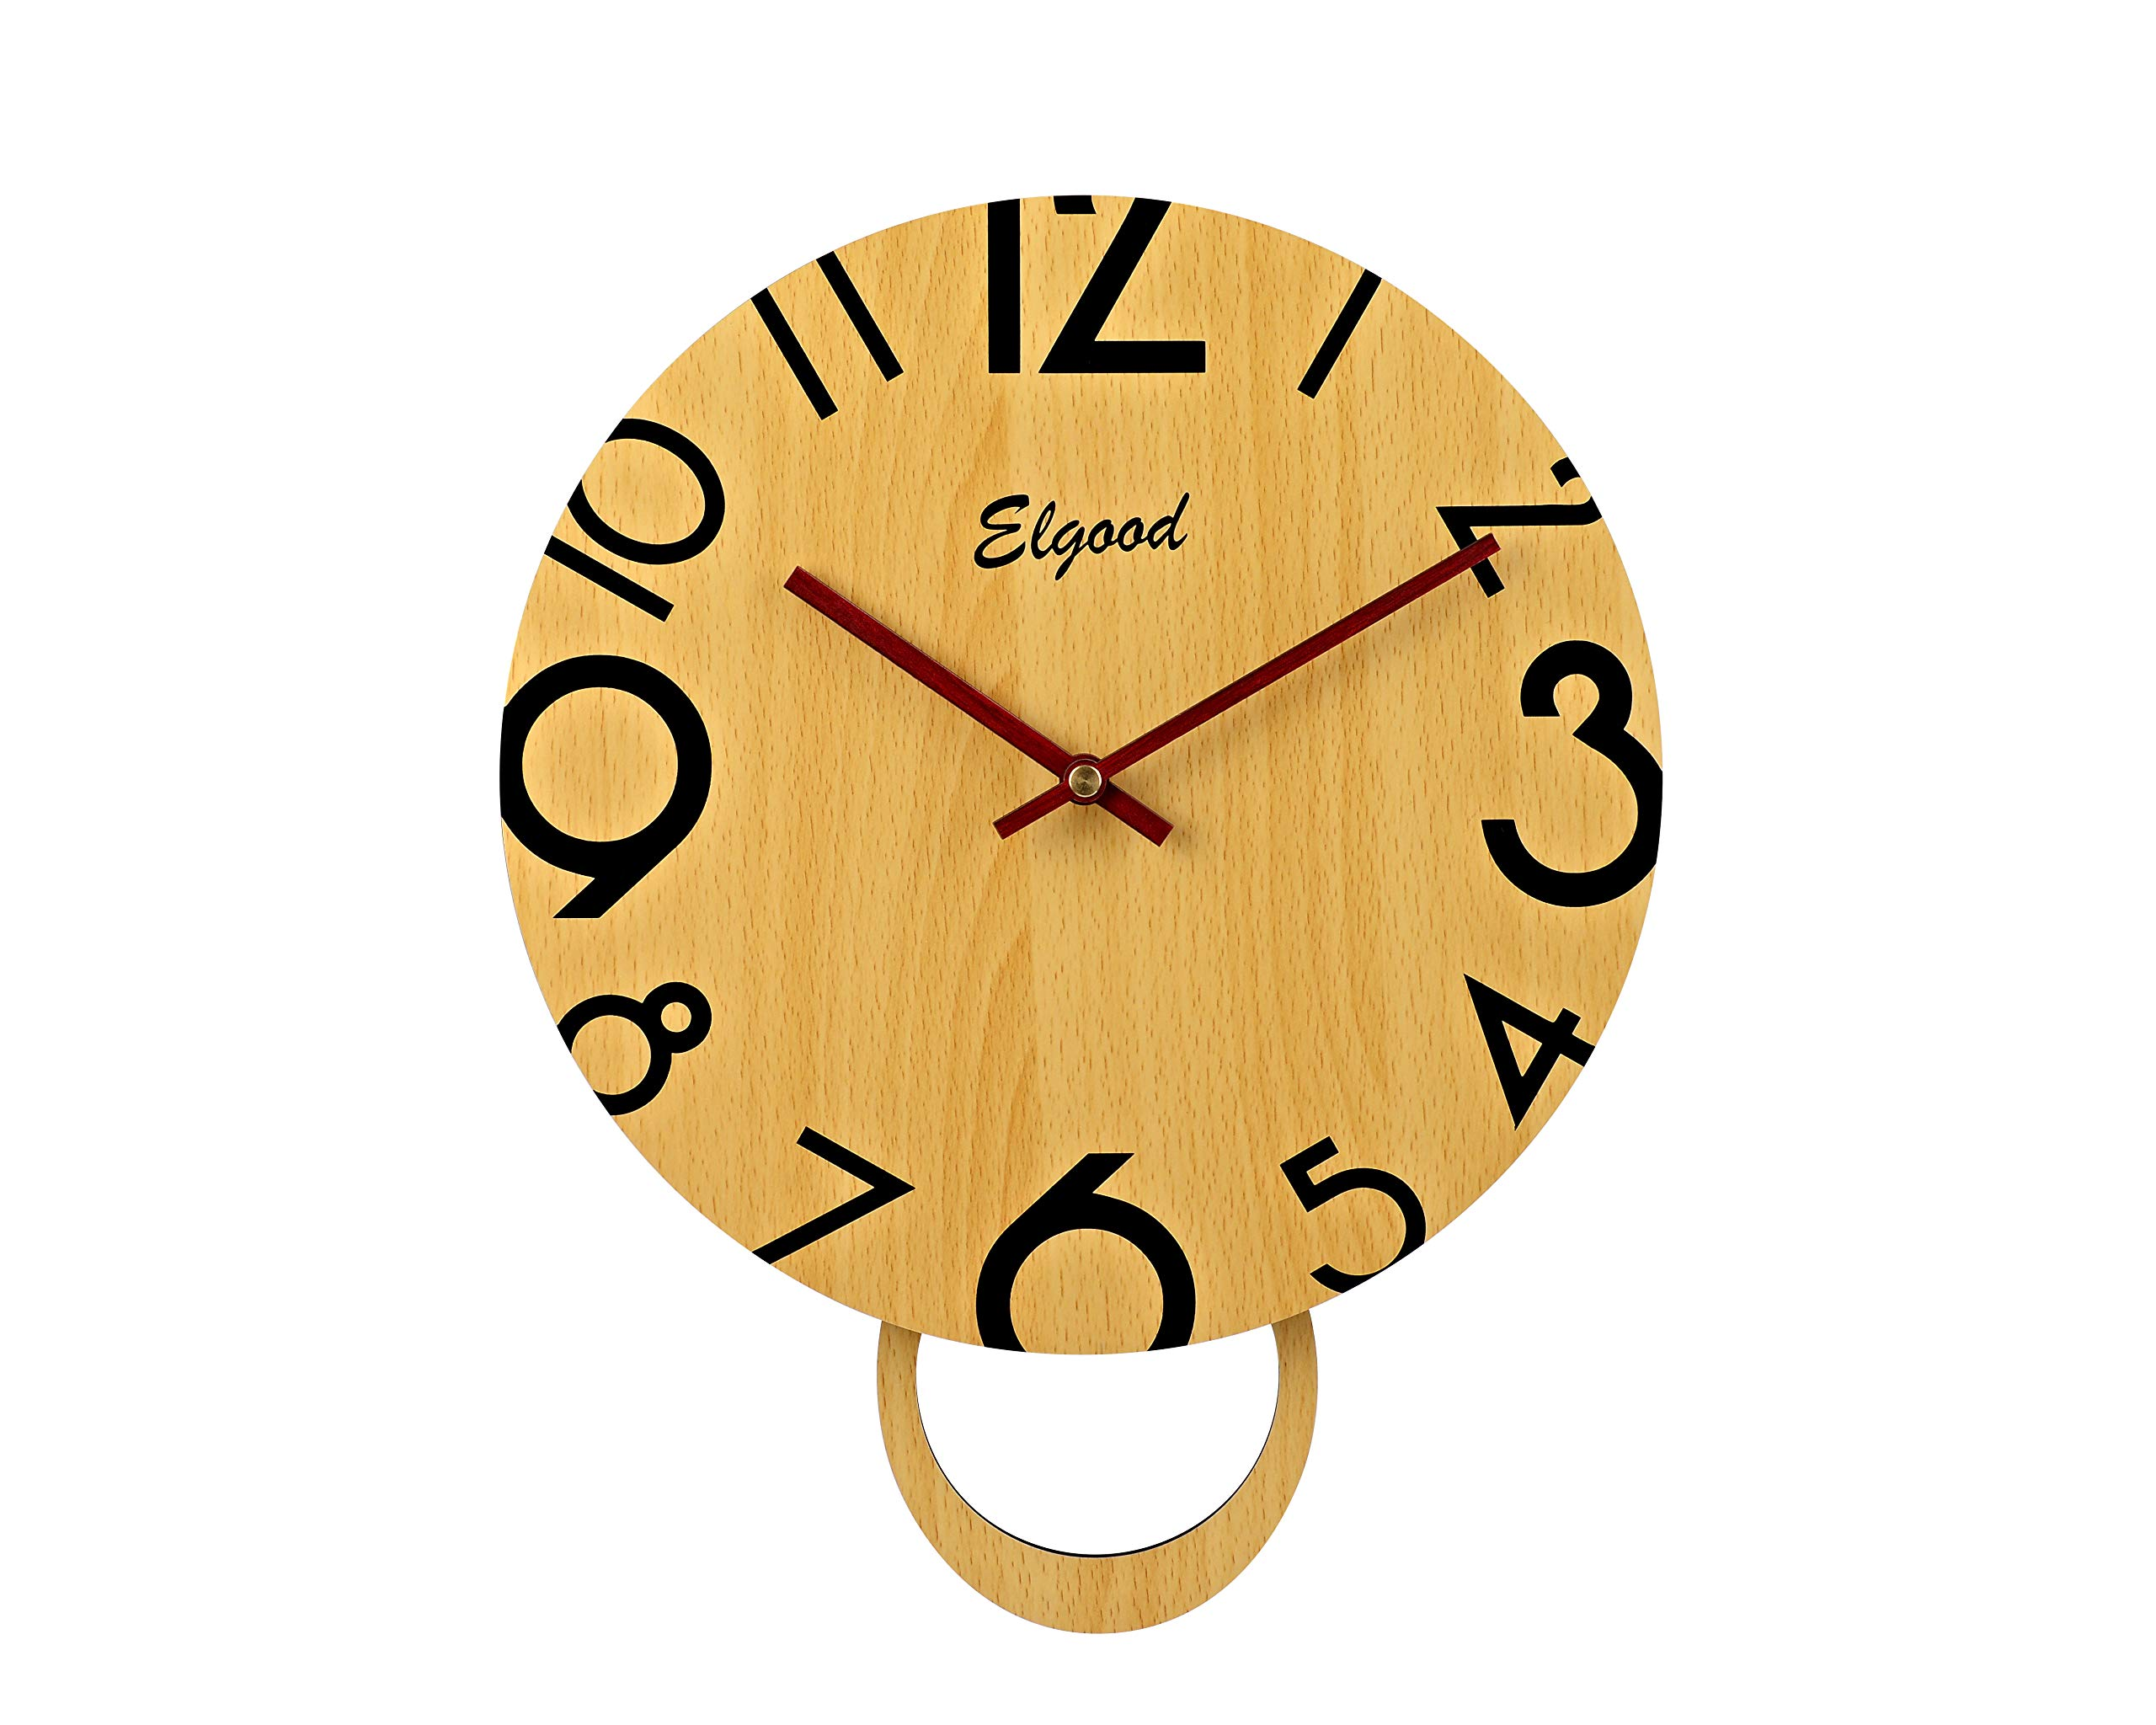 Elgood 12-inch Slow Sweep Non-Ticking Silent Wooden Digital Wall Clock (Yellow) - Craftmanship: adopts medium-density fiberboard cut by laser in clock face. Numbers are printed in the clock face by screen printing technology, be clear, corrosion resistance, and with strong stereoscopic impression Slow sweep, without second pointers: slow sweep creates a slower pace of life, making you be immersed in leisure time, be so comfortable. The design without second pointers, but minute hand moves lightly each second. Sun brand clock mechanism: Sun manufacturer has specialized in producing clock mechanisms for about 23 years, with high-quality and slow sweep clock mechanism, keep good time, and have long service life - wall-clocks, living-room-decor, living-room - 81nRsbWVlGL -